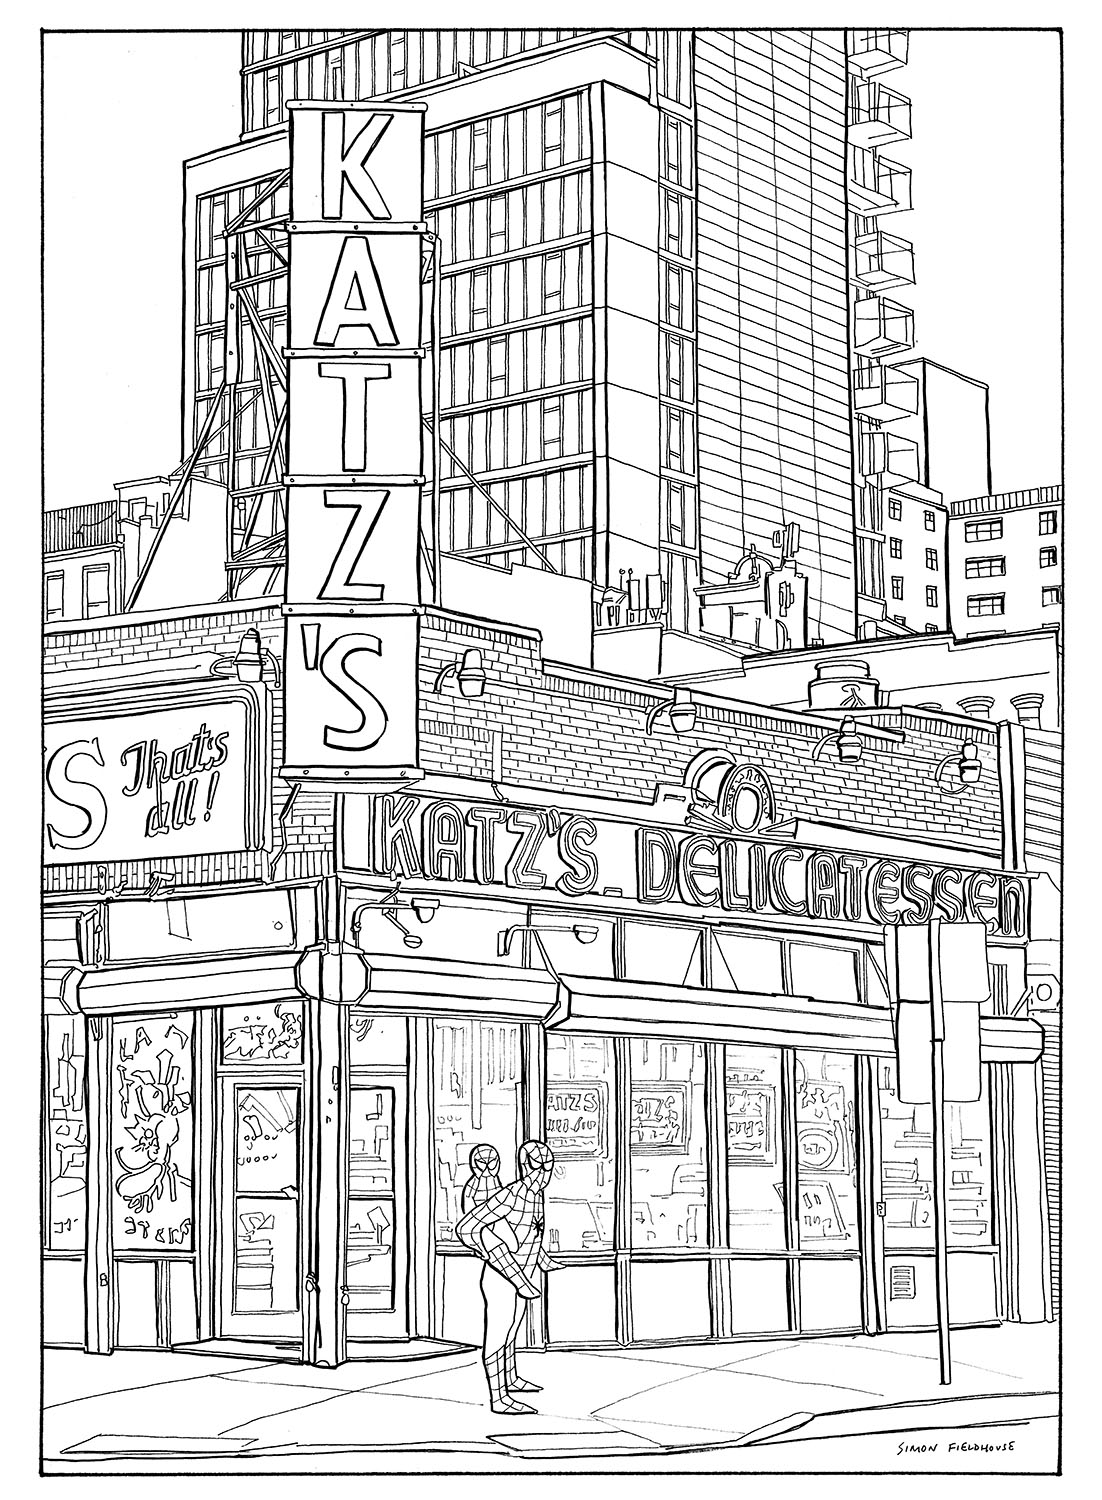 Katz's Delicatessen - New York